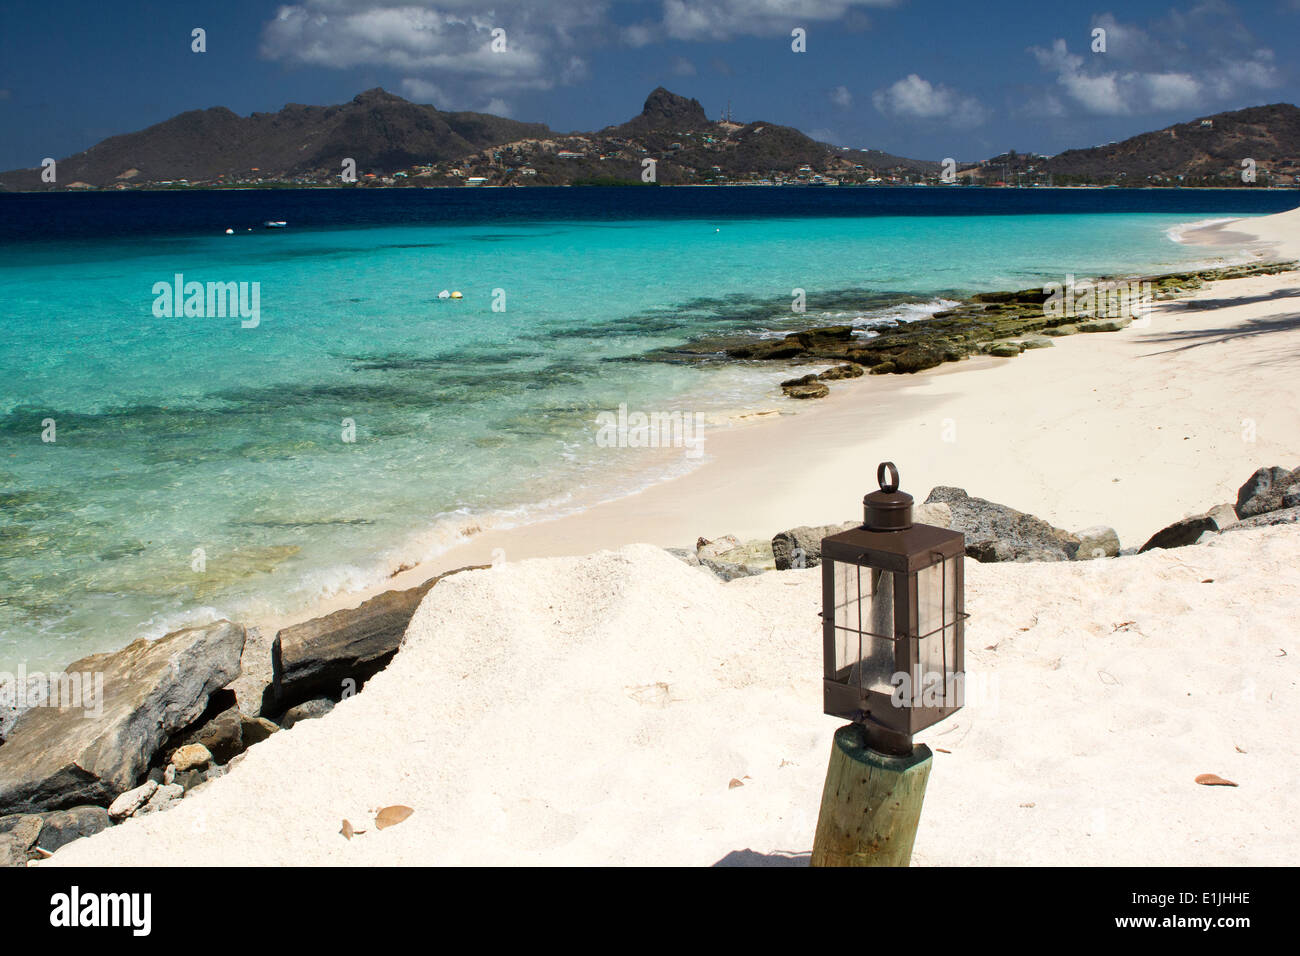 Palm Island Beach with Lamp, Turquoise Caribbean Ocean and View of Union Island. Saint Vincent and the Grenadines. - Stock Image